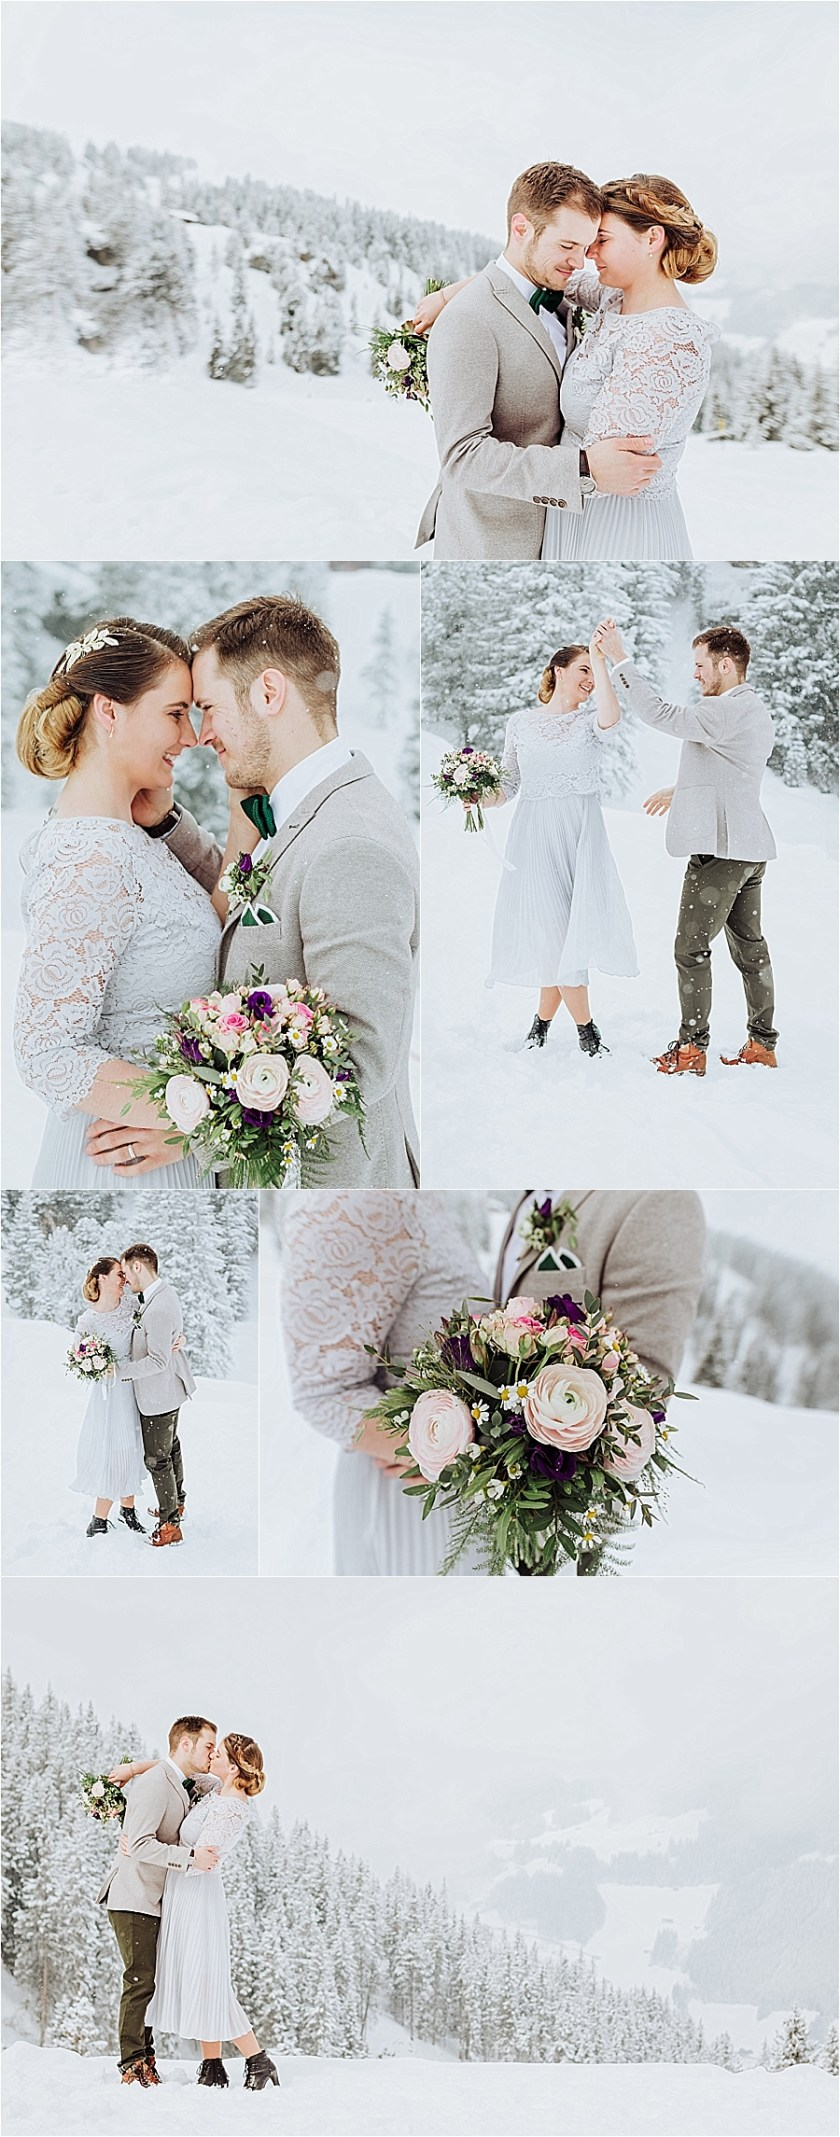 N & F dance around as the snowflakes fall for their winter mountain elopement in Mayrhofen Austria by Wild Connections Photography